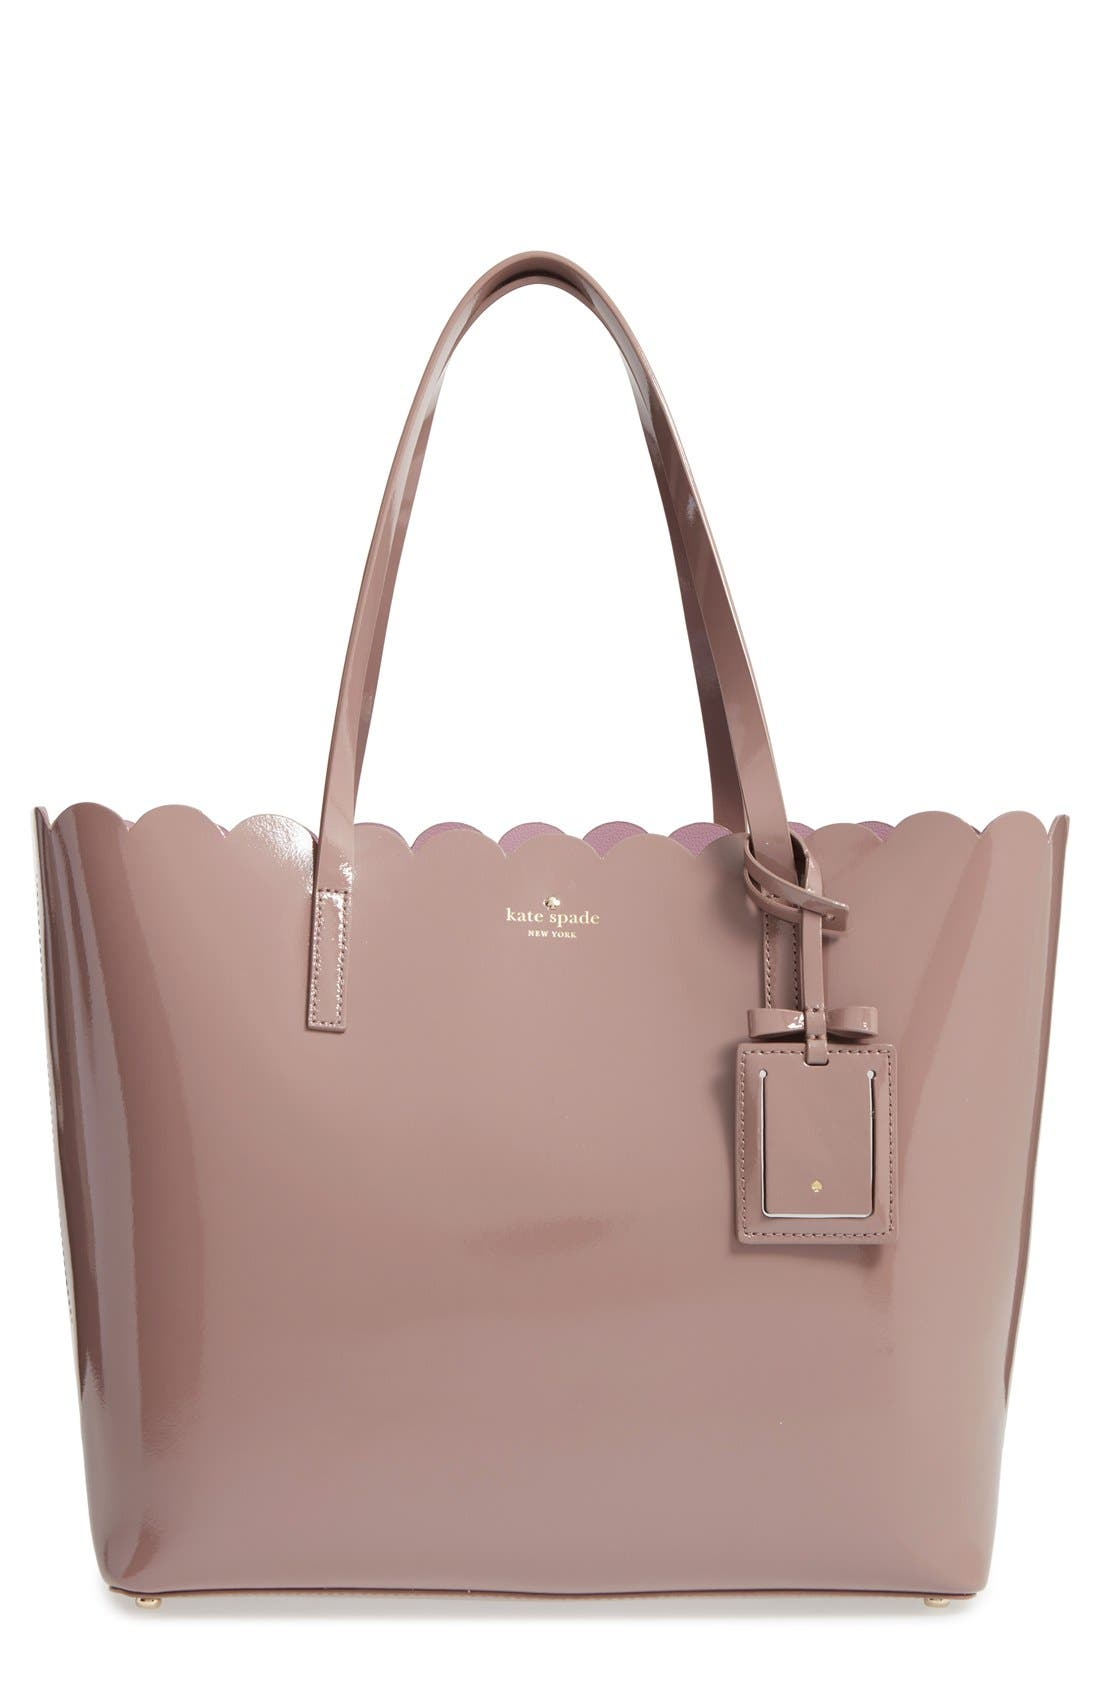 Alternate Image 1 Selected - kate spade new york 'lily avenue patent - carrigan' leather tote